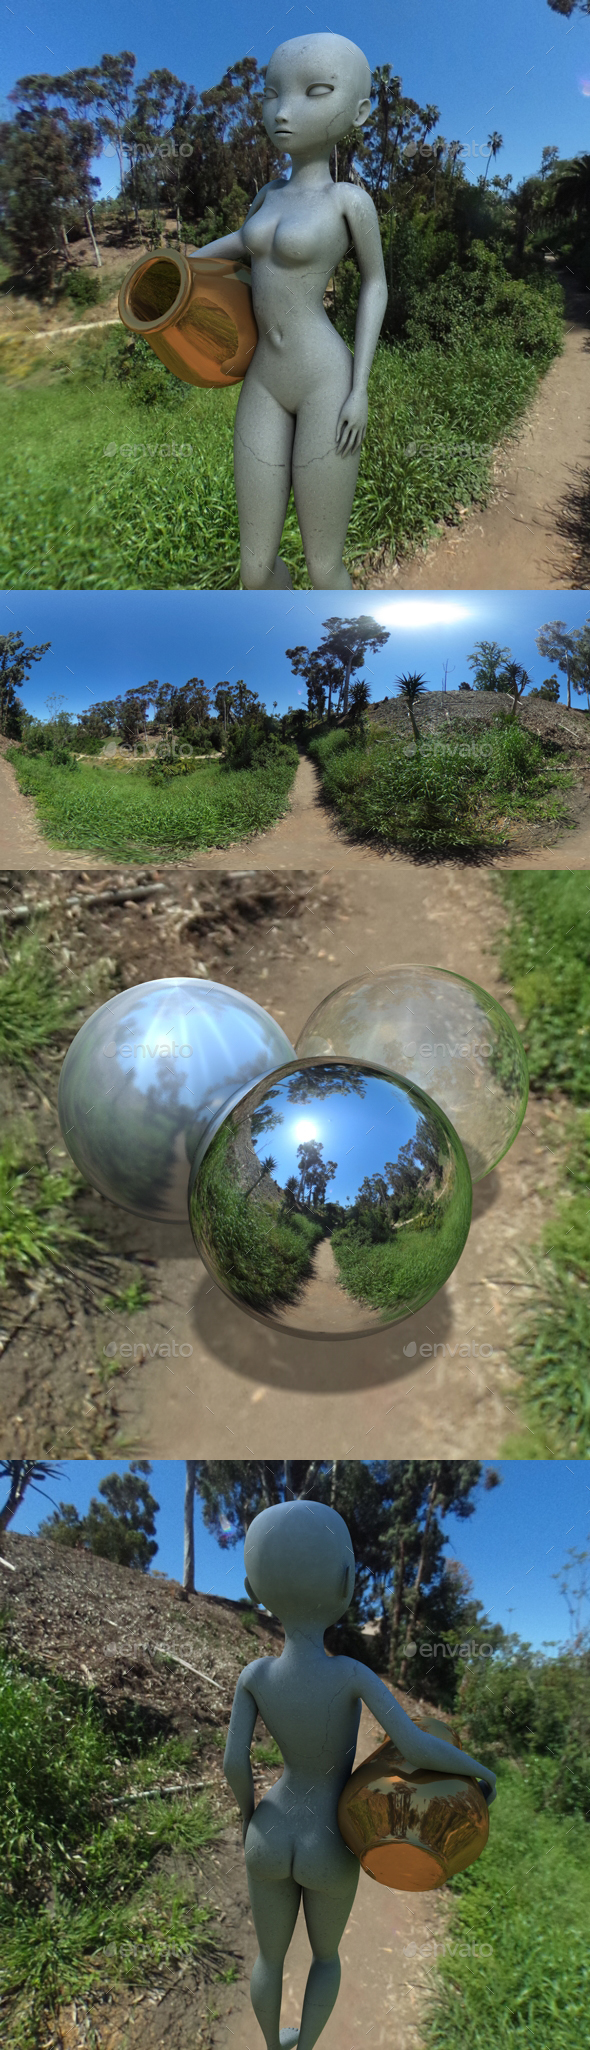 Blue Sky Jungle Trail HDRI - 3DOcean Item for Sale